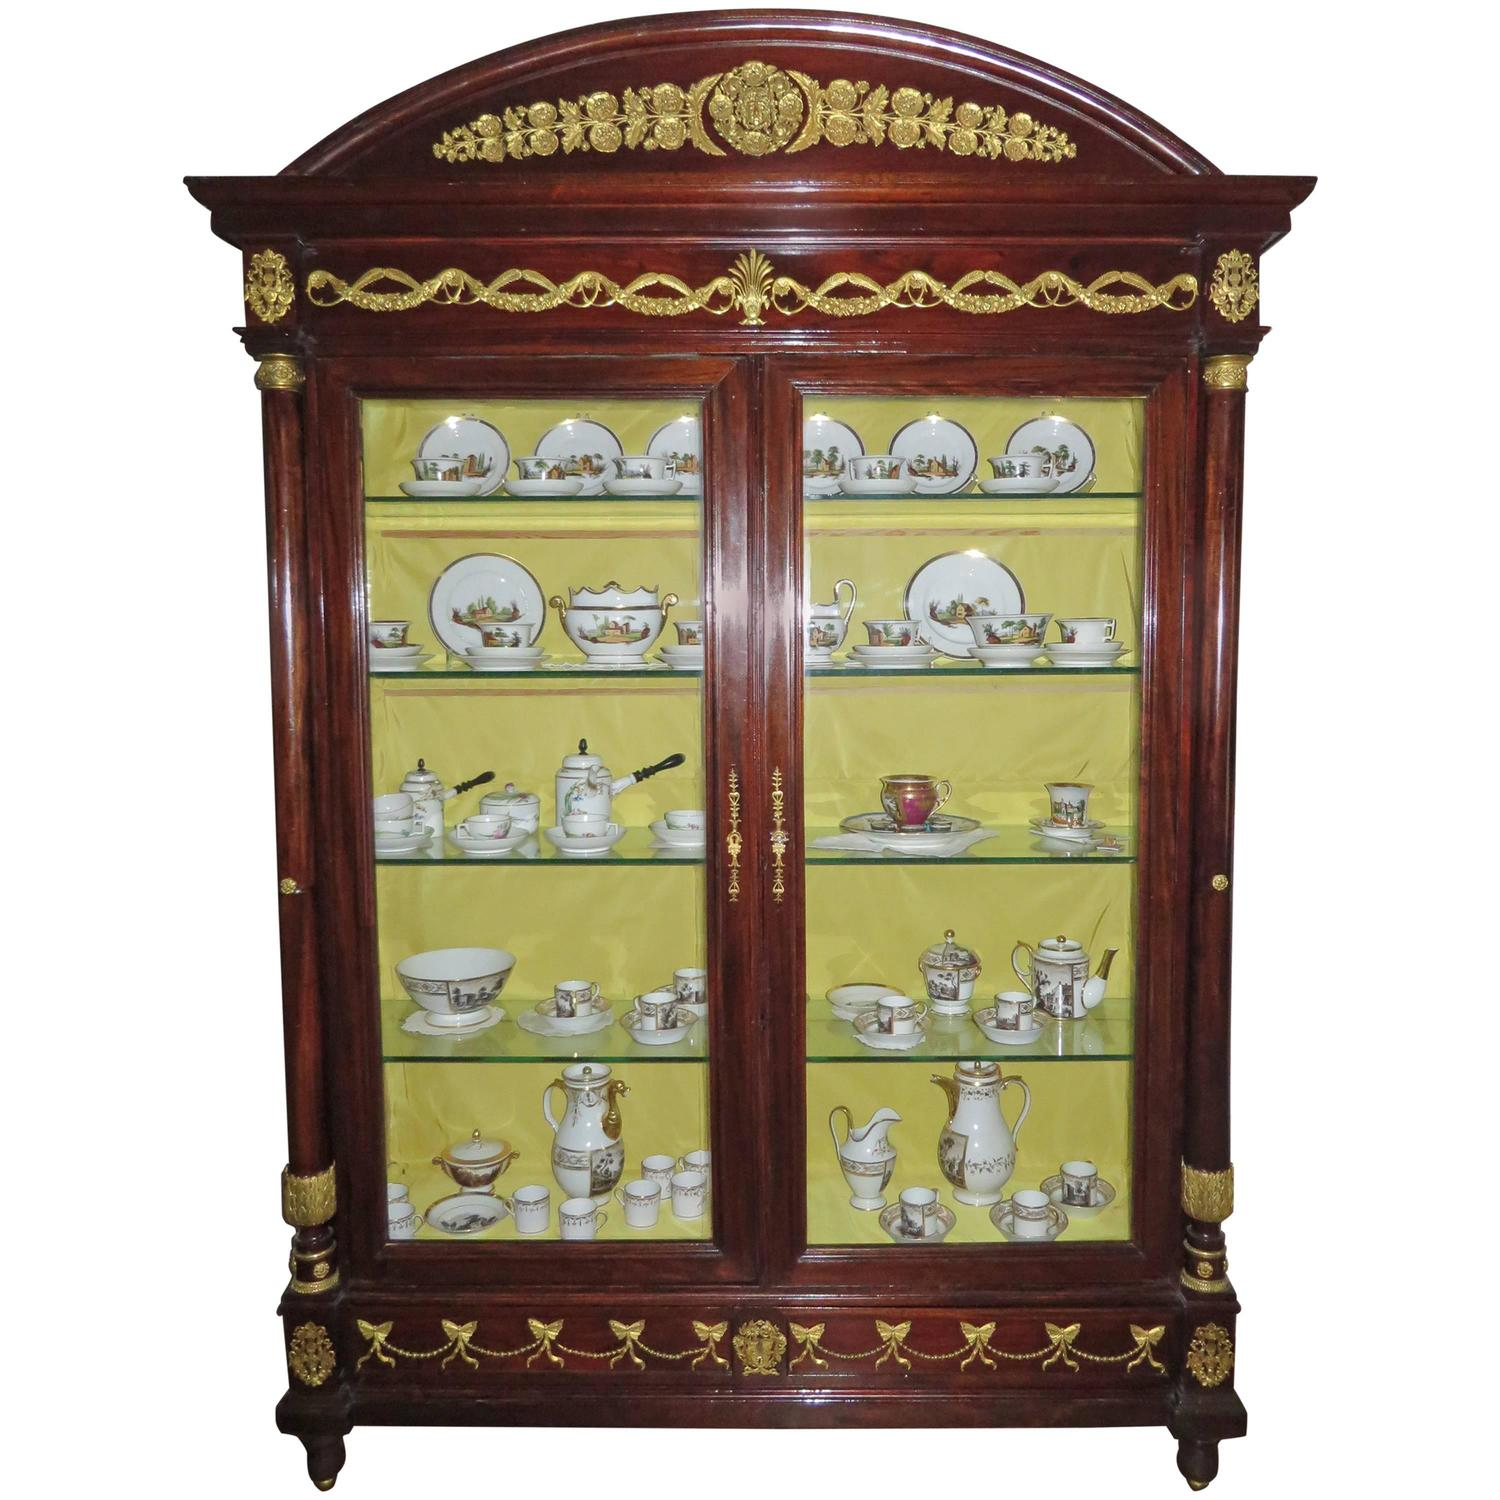 new orleans empire style mahogany display cabinet adorned with fine ormolu at 1stdibs. Black Bedroom Furniture Sets. Home Design Ideas